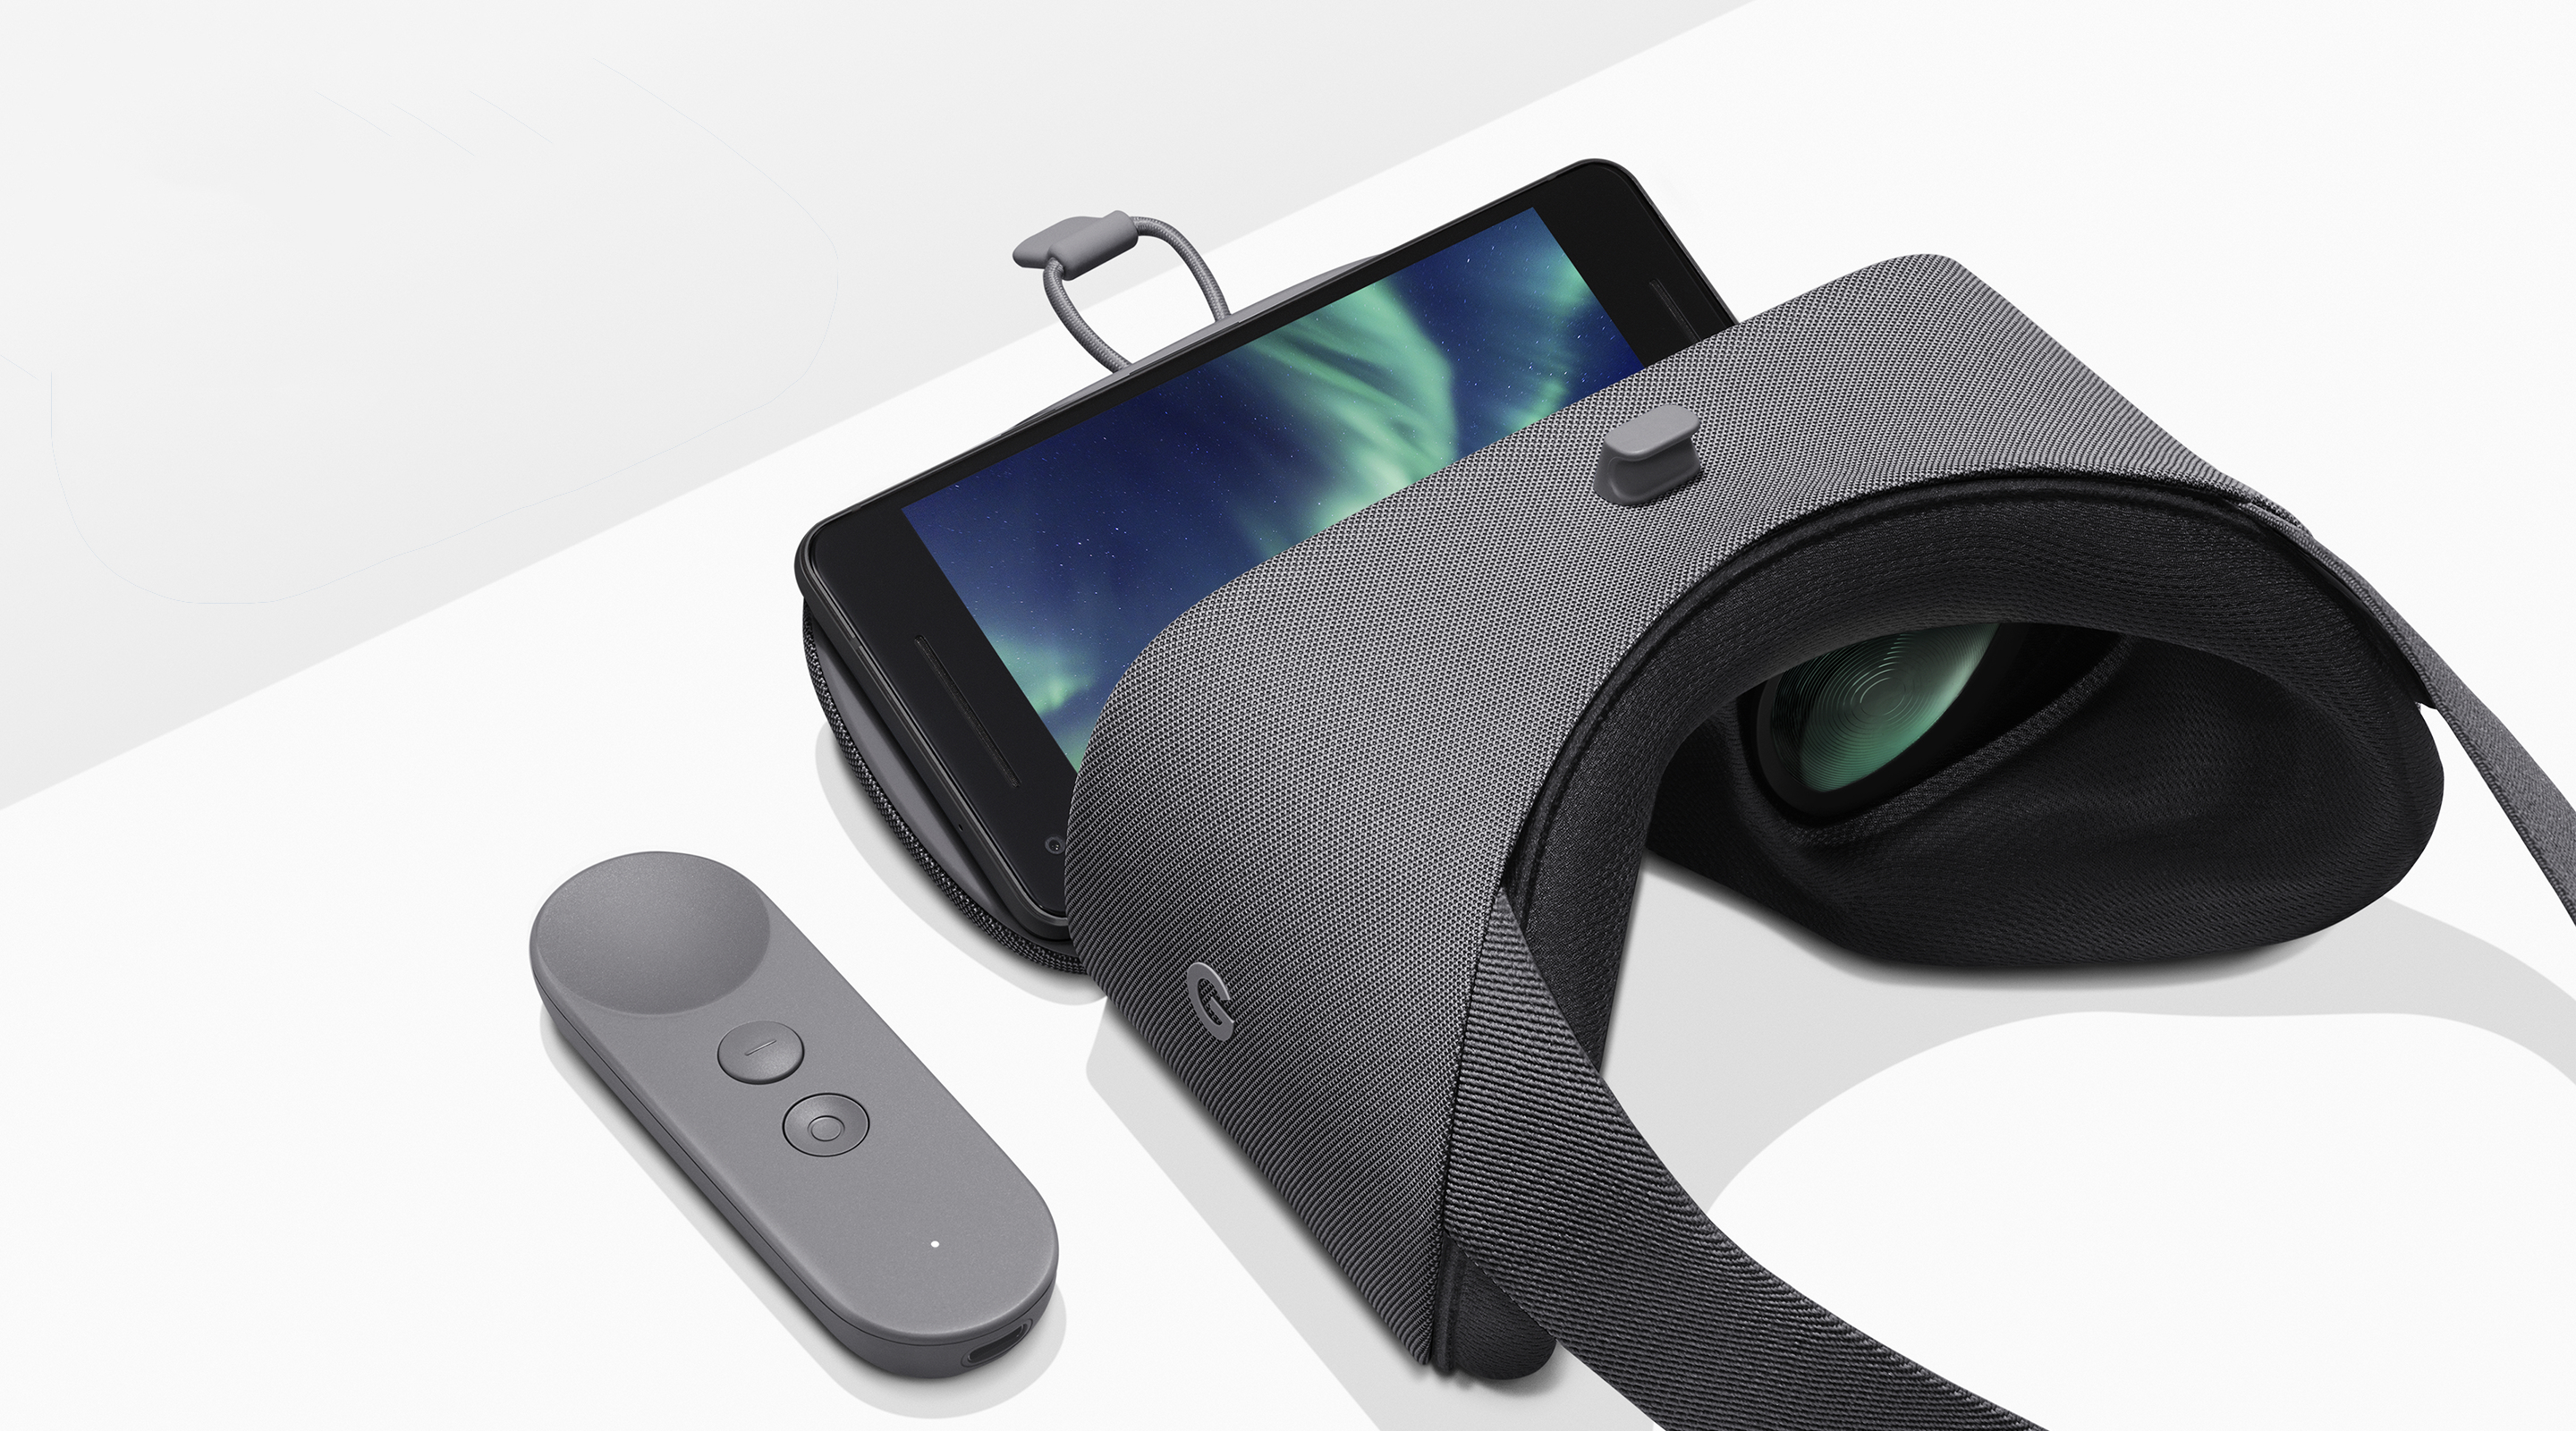 Pixel 2 and Daydream View: new experiences in AR and VR